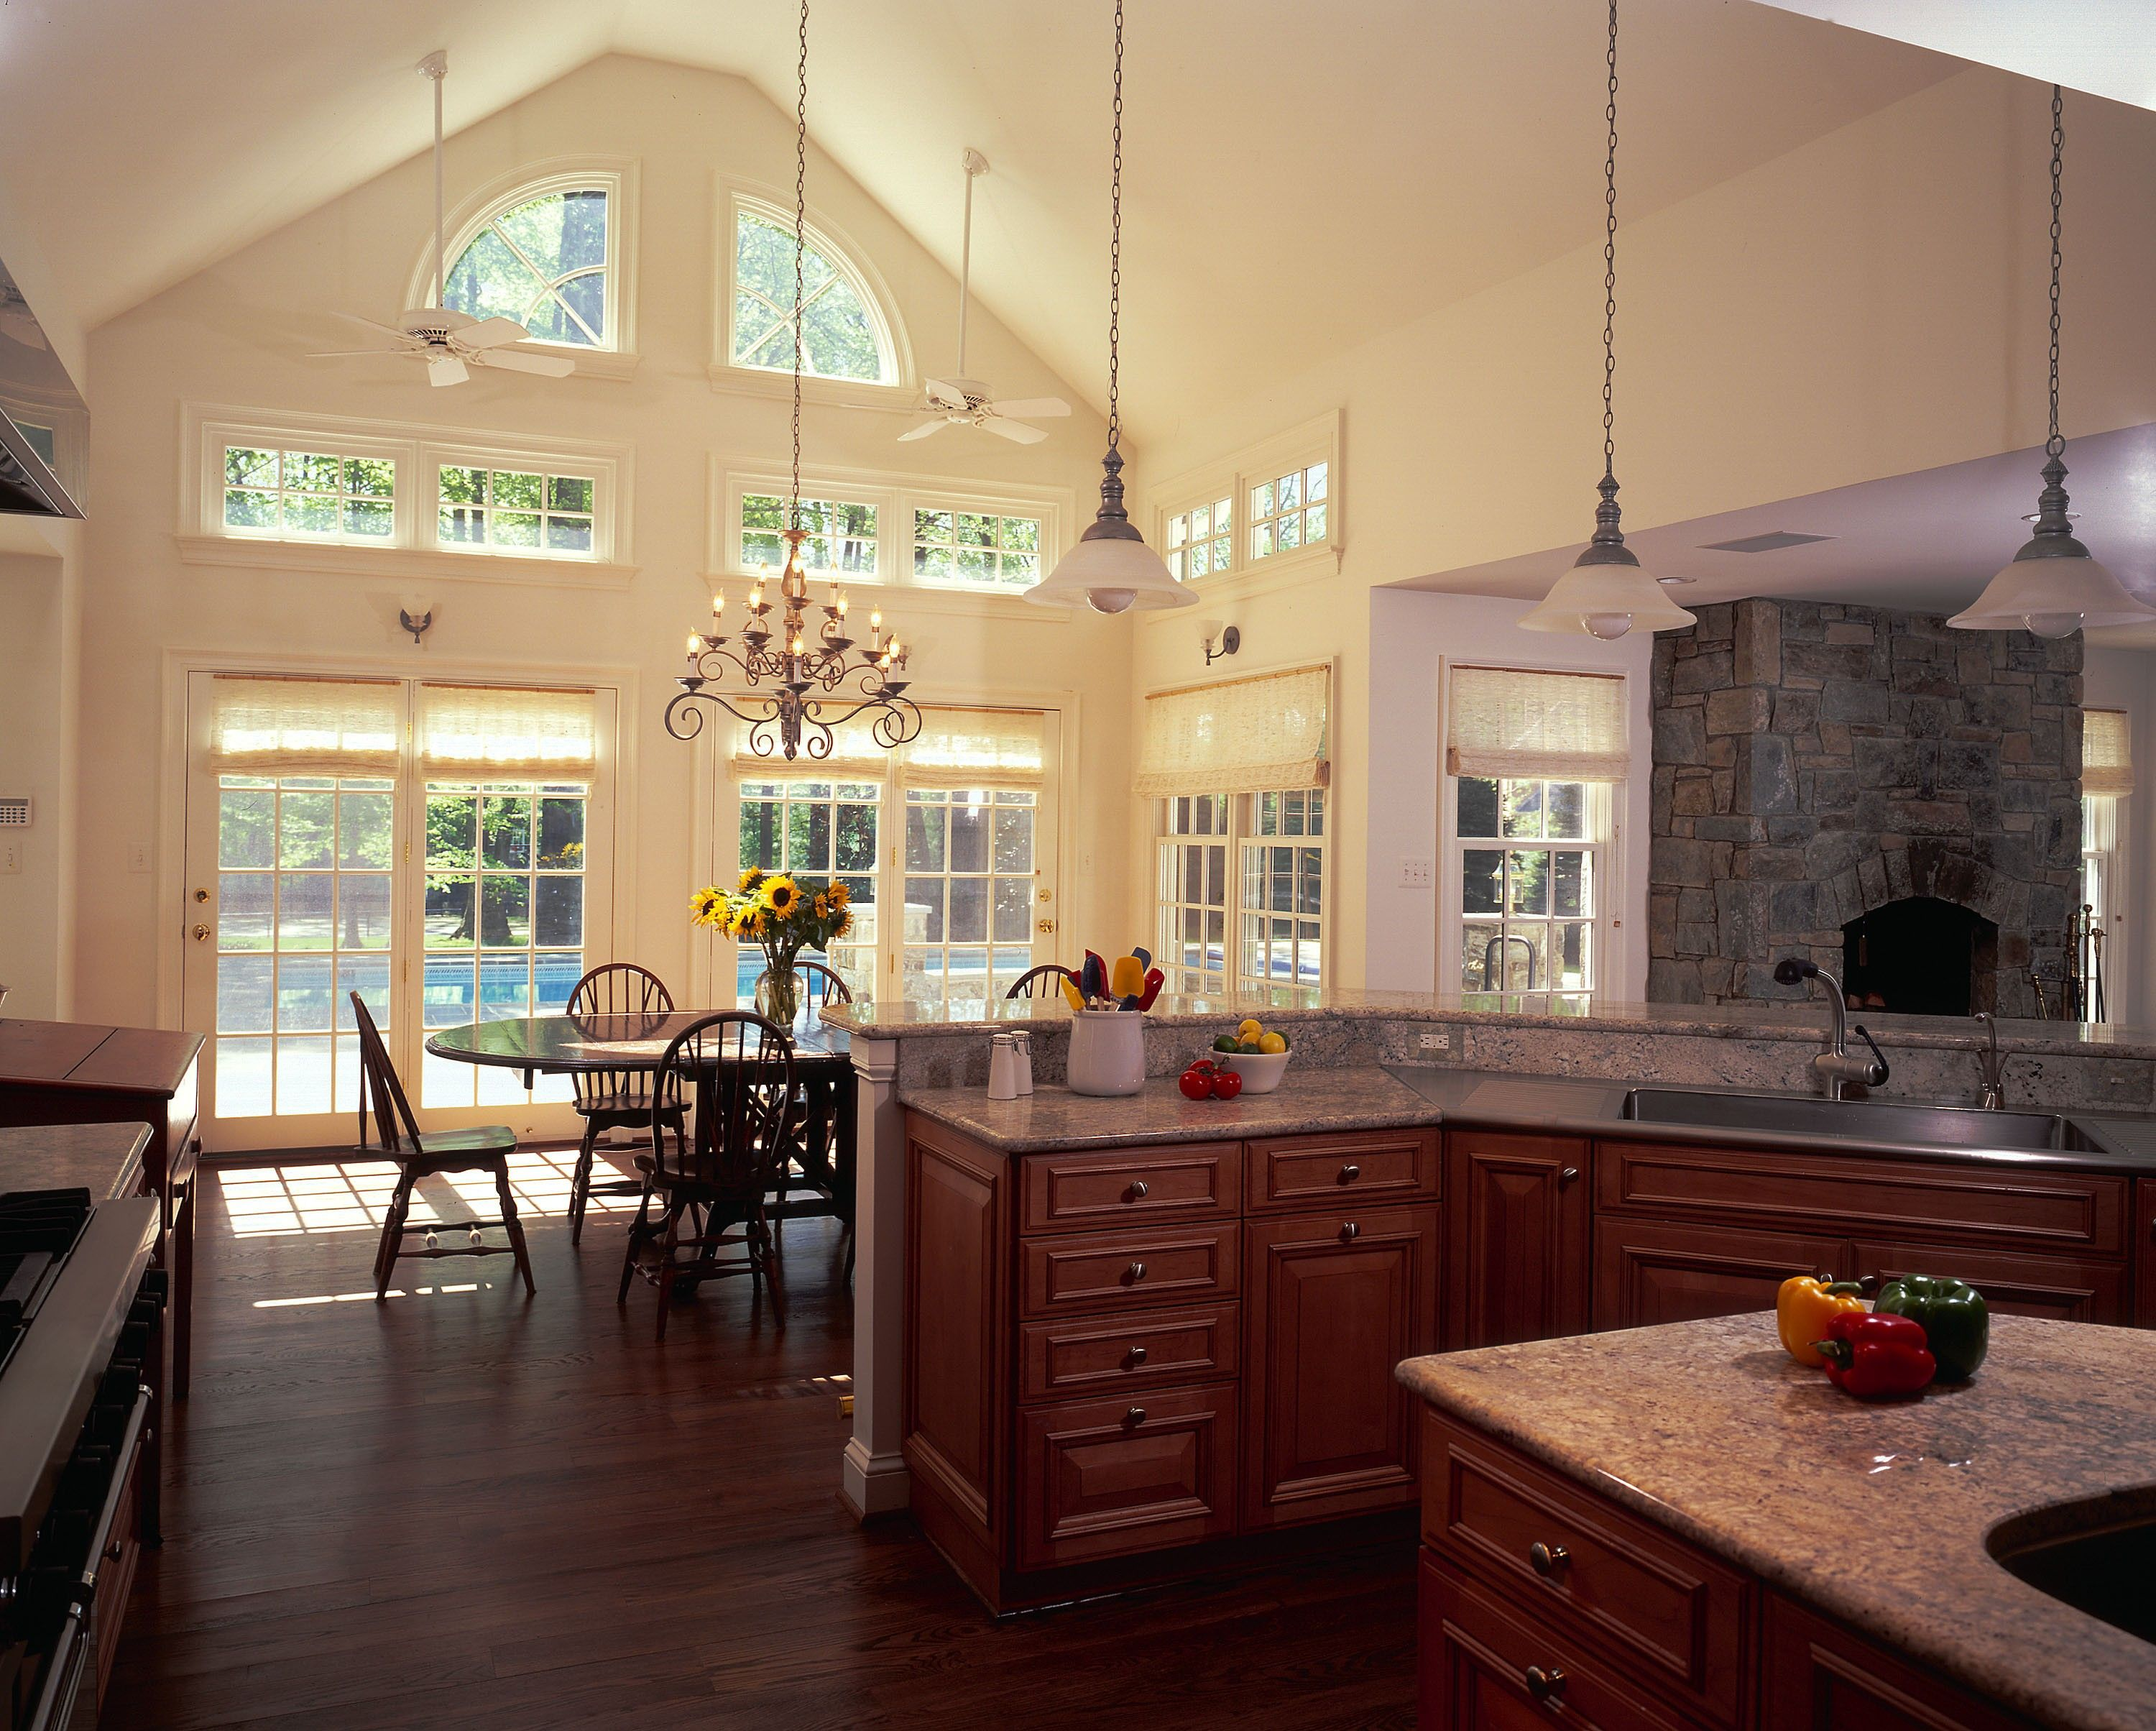 i love the vaulted ceilings and natural sunlight dream home image detail for open gable window of the breakfast room the room fills with the warm